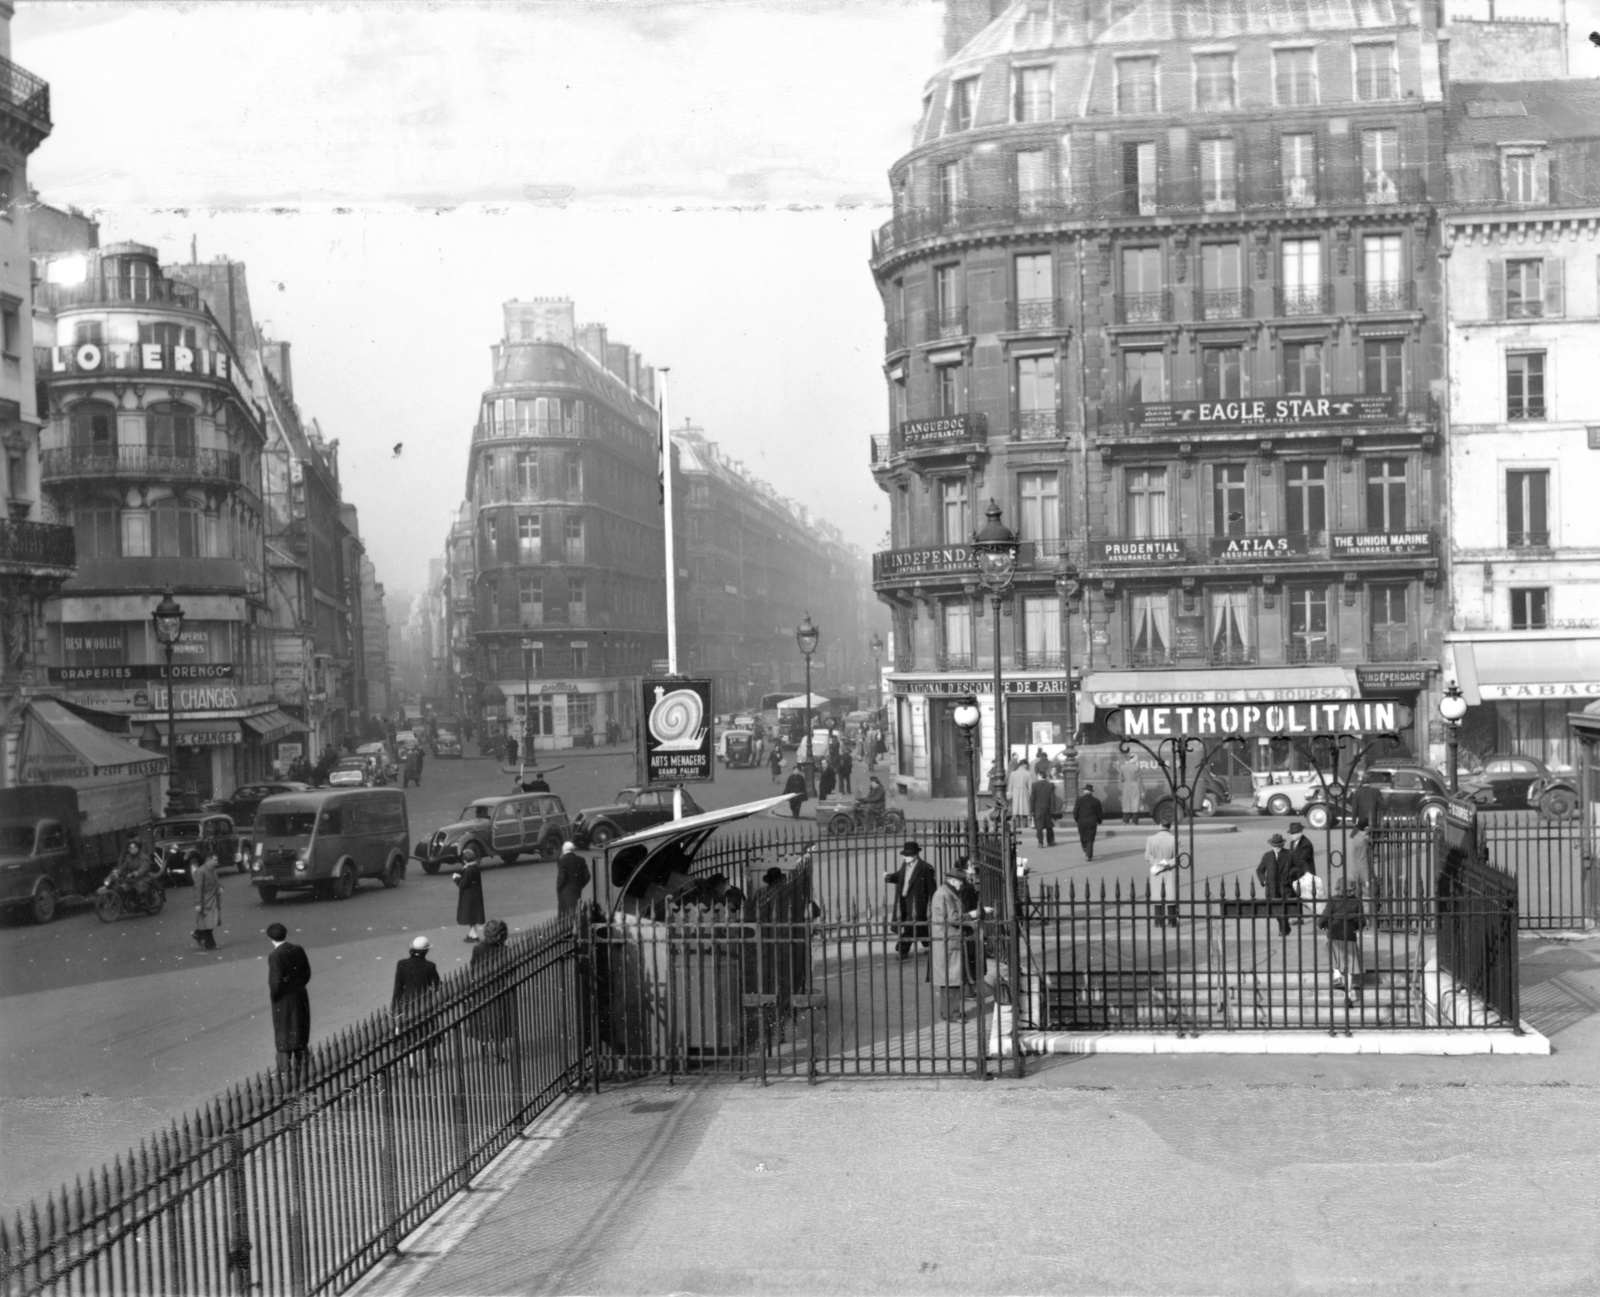 [View of the Place de la Bourse - Paris]